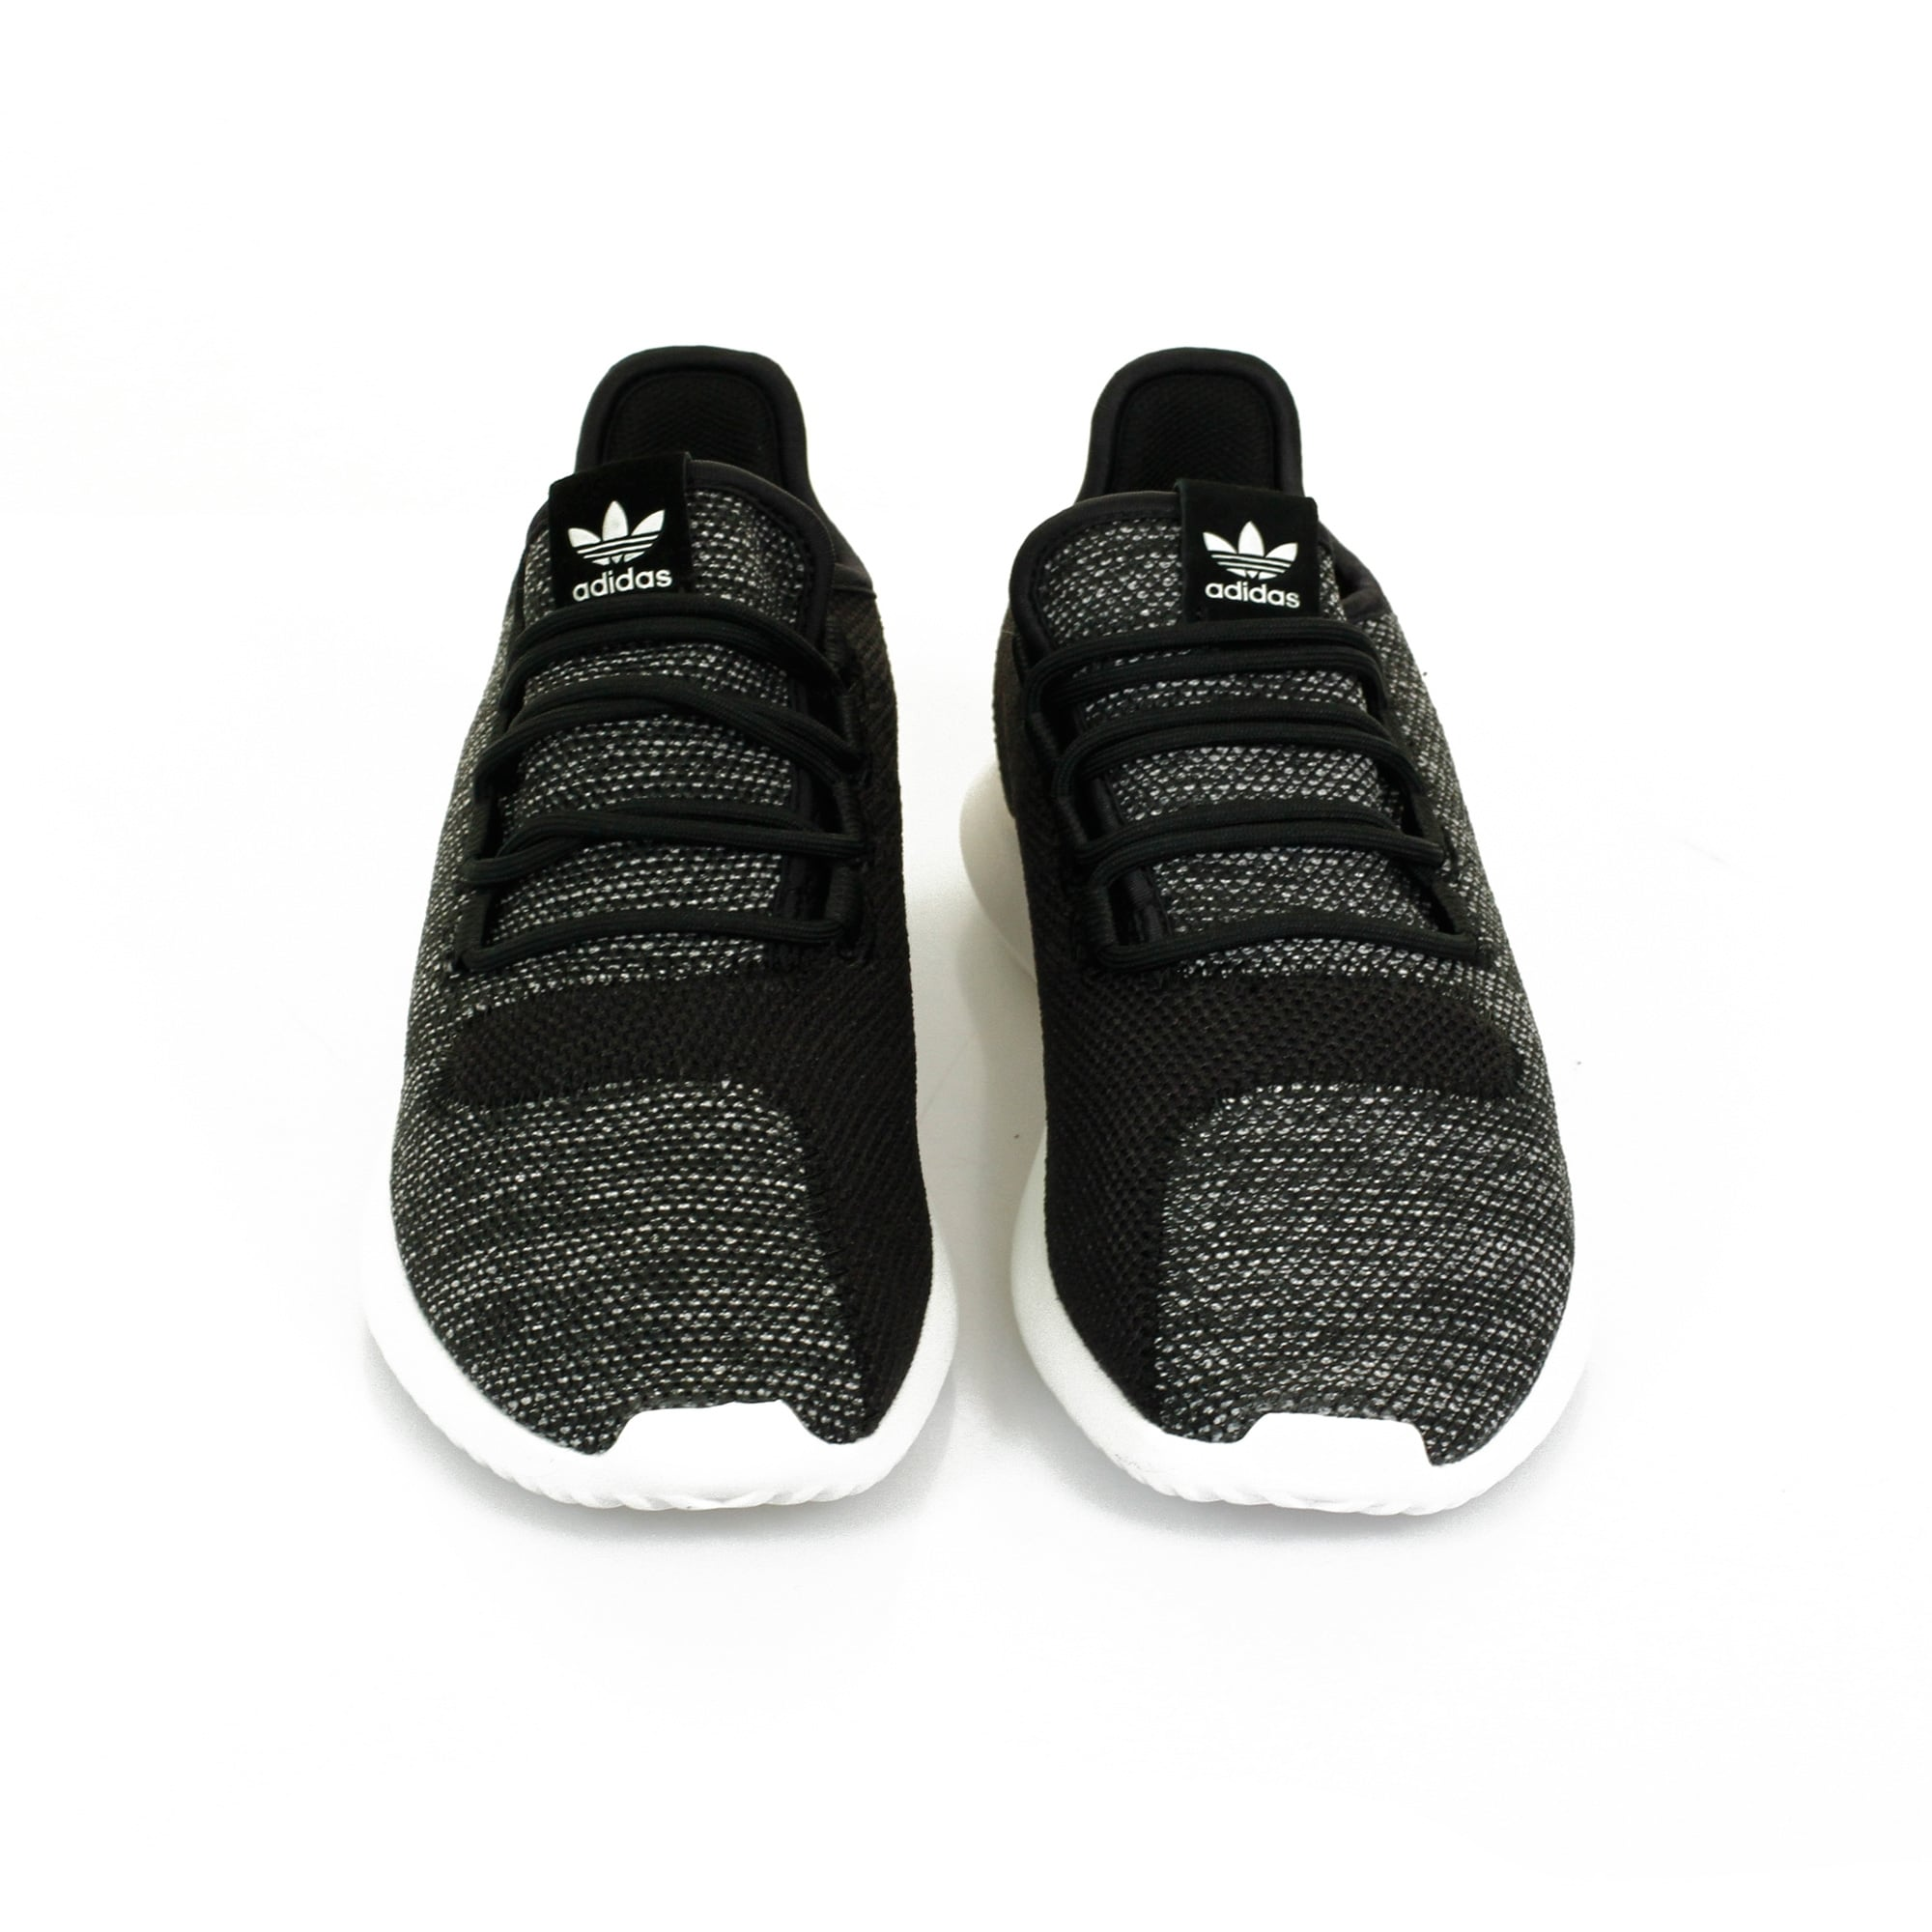 adidas black knit sneakers